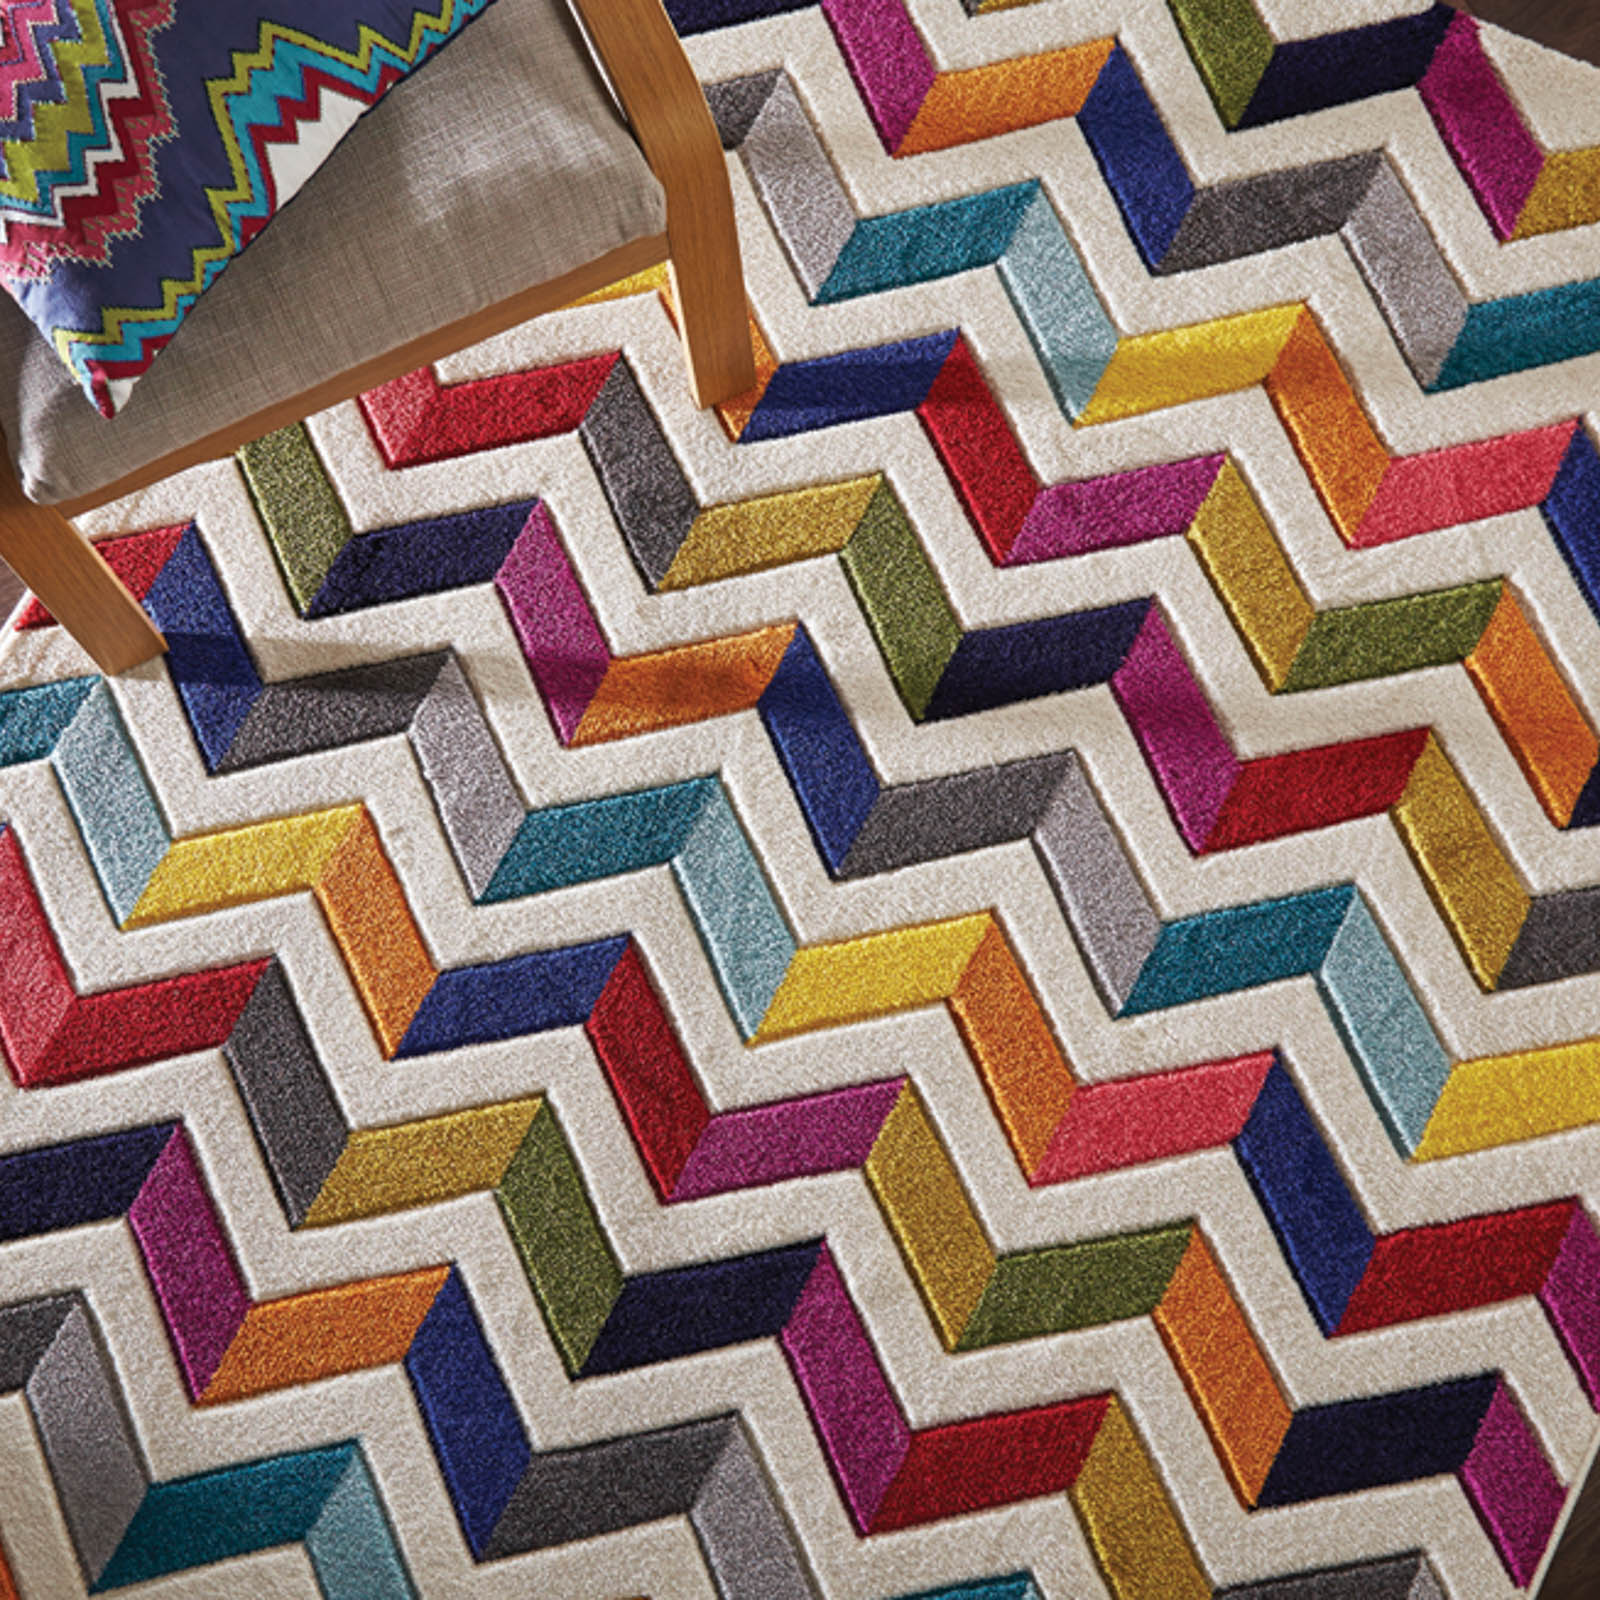 Spectrum zigzag and multicoloured rug part of a joint competition